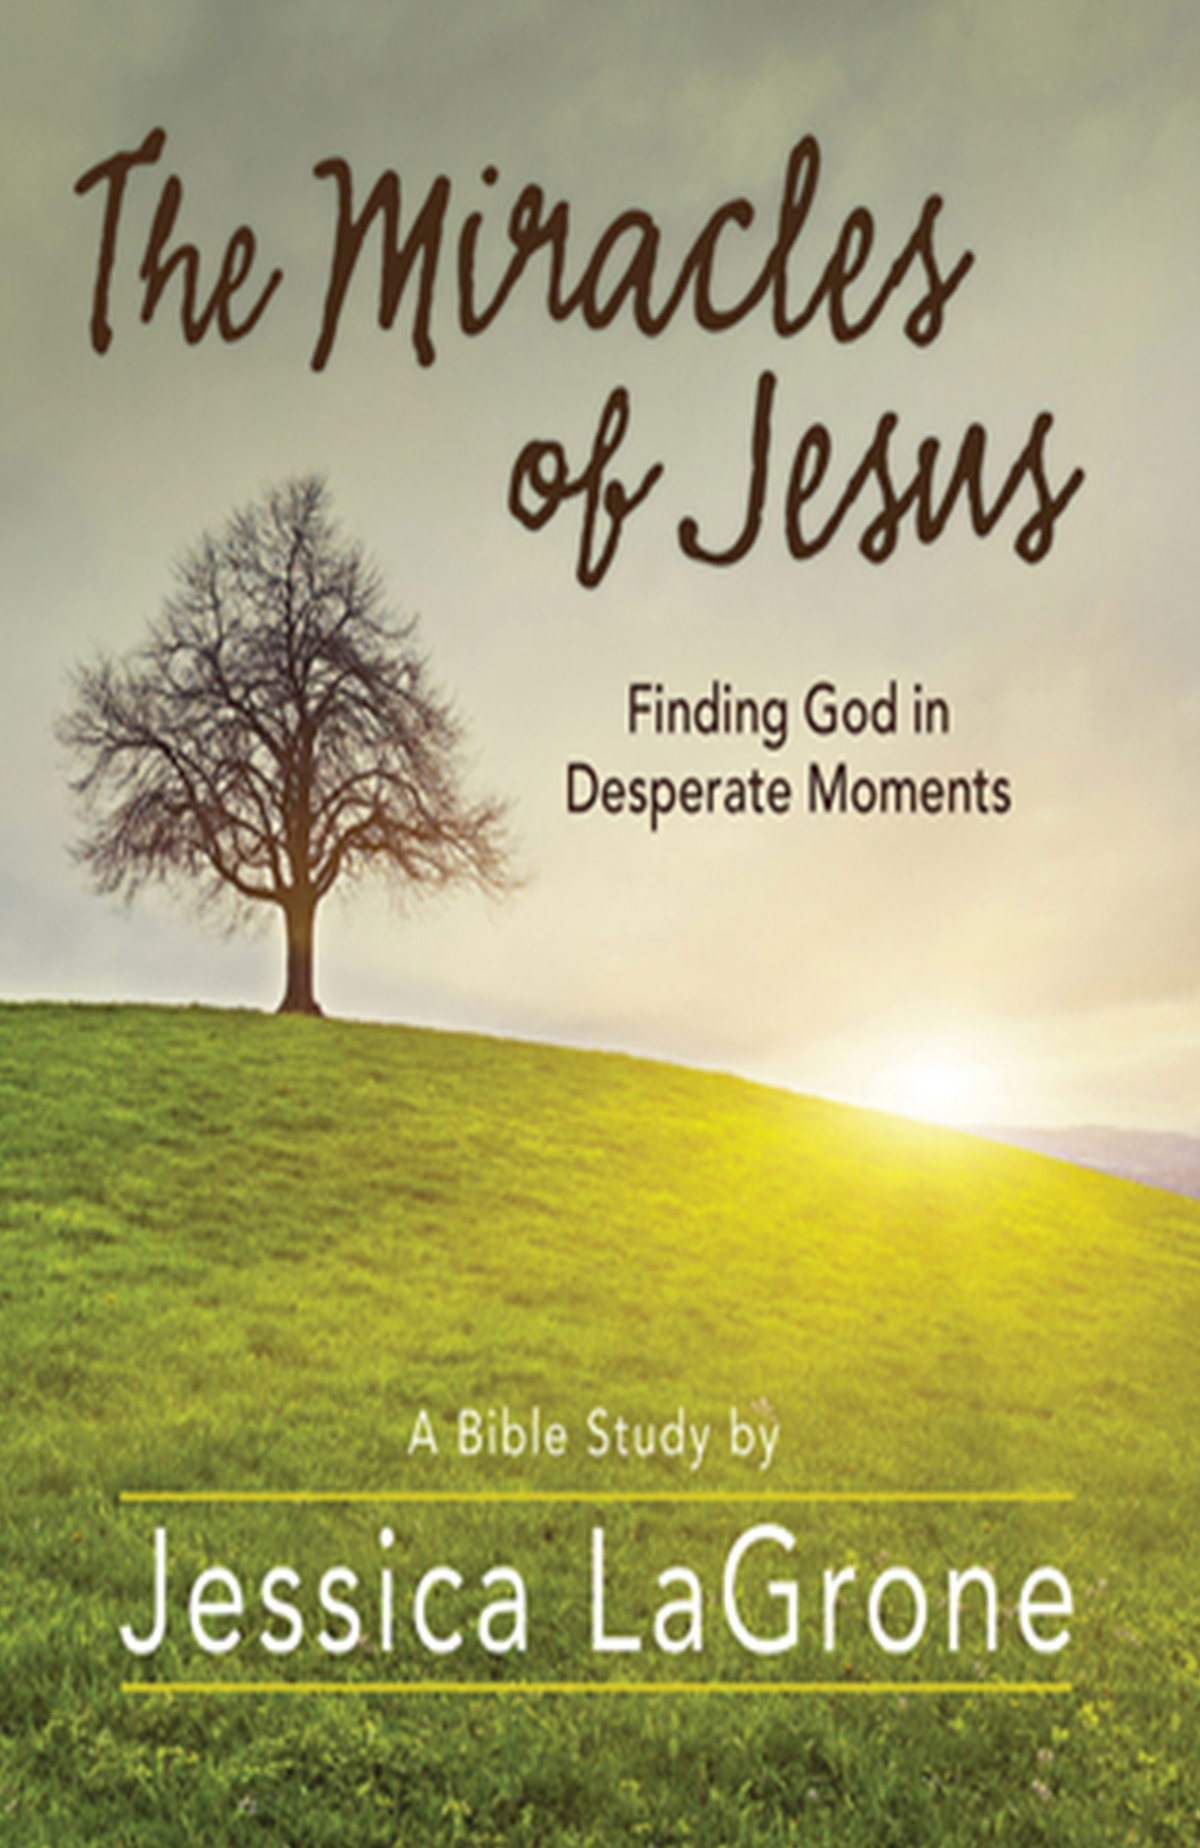 miricals of jesus book cover